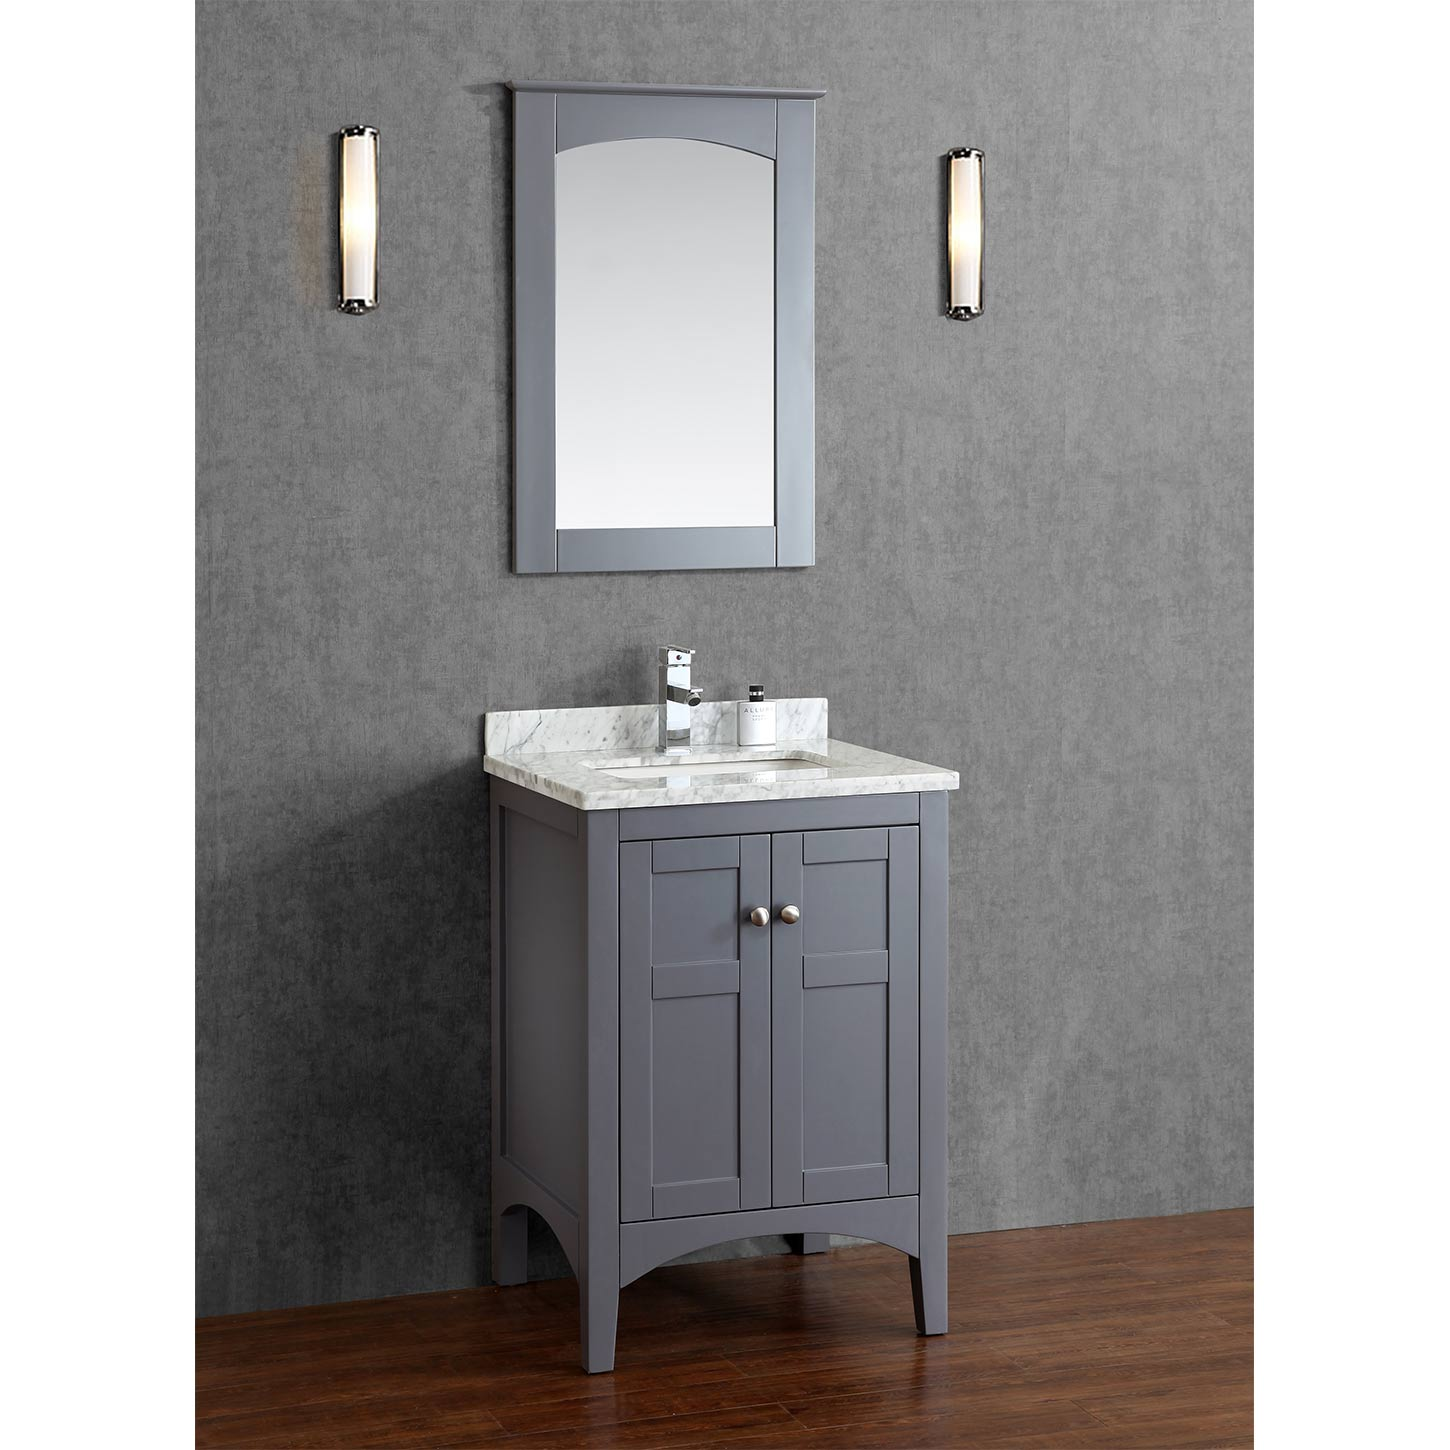 Buy Martin 24 Inch Solid Wood Single Bathroom Vanity In Charcoal Grey Hm 001 24 Wmsq Cg Conceptbaths Com